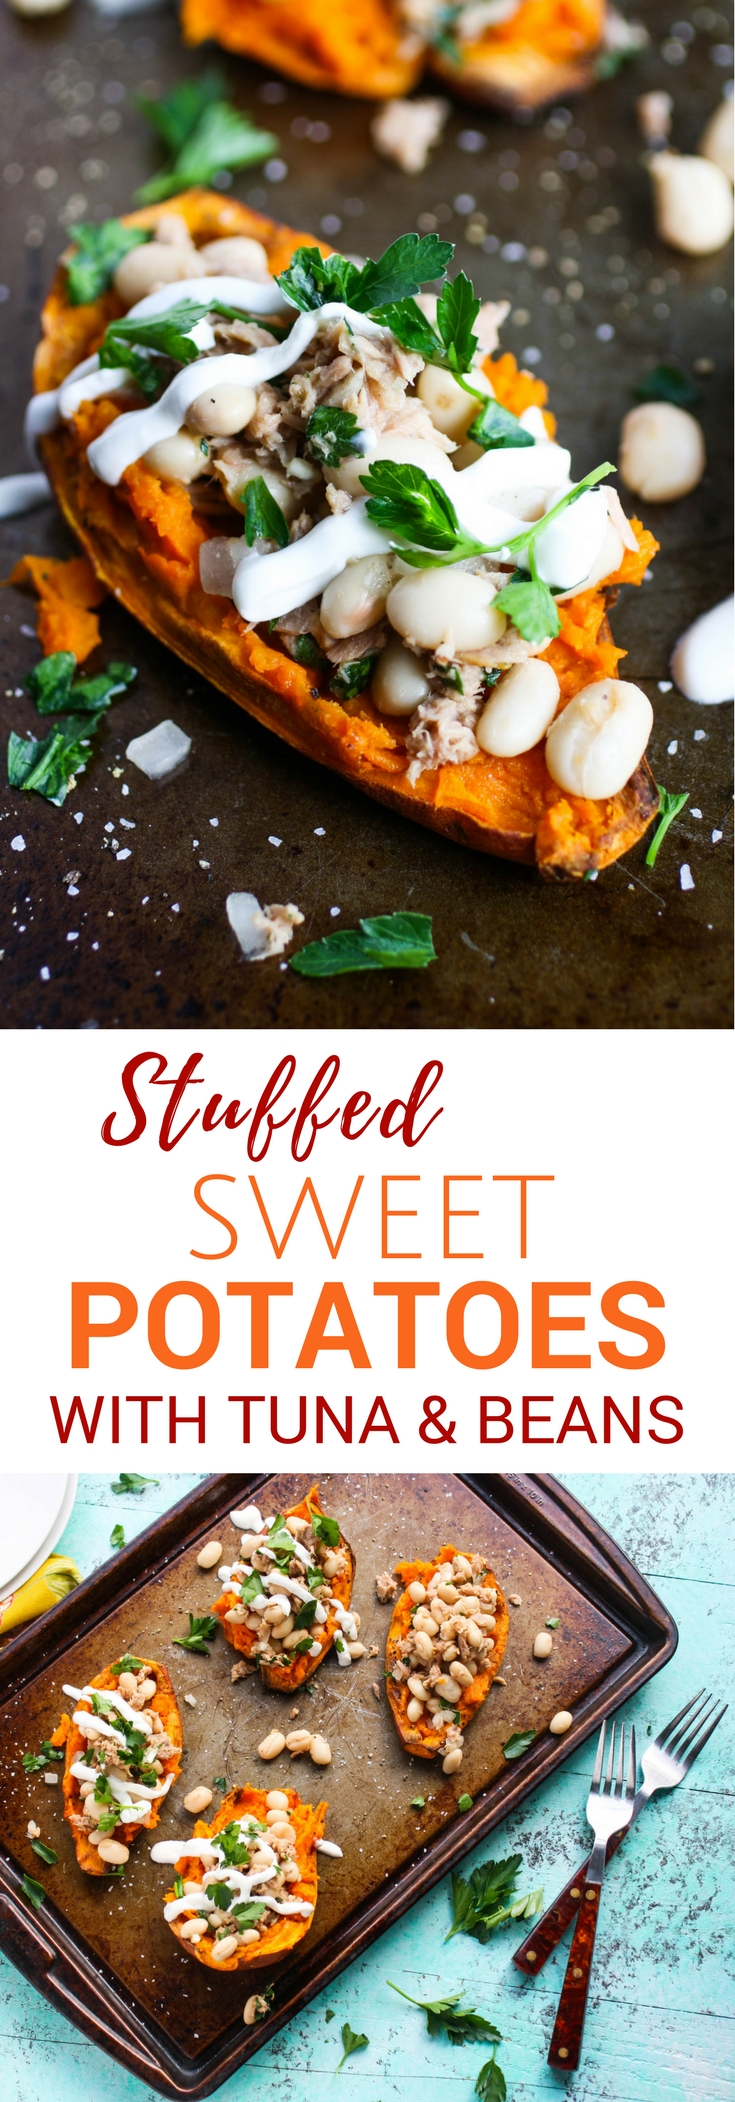 Stuffed Sweet Potatoes with Tuna and Beans are so tasty! You'll devour these stuffed sweet potatoes -- they're easy to make and so tasty, too!